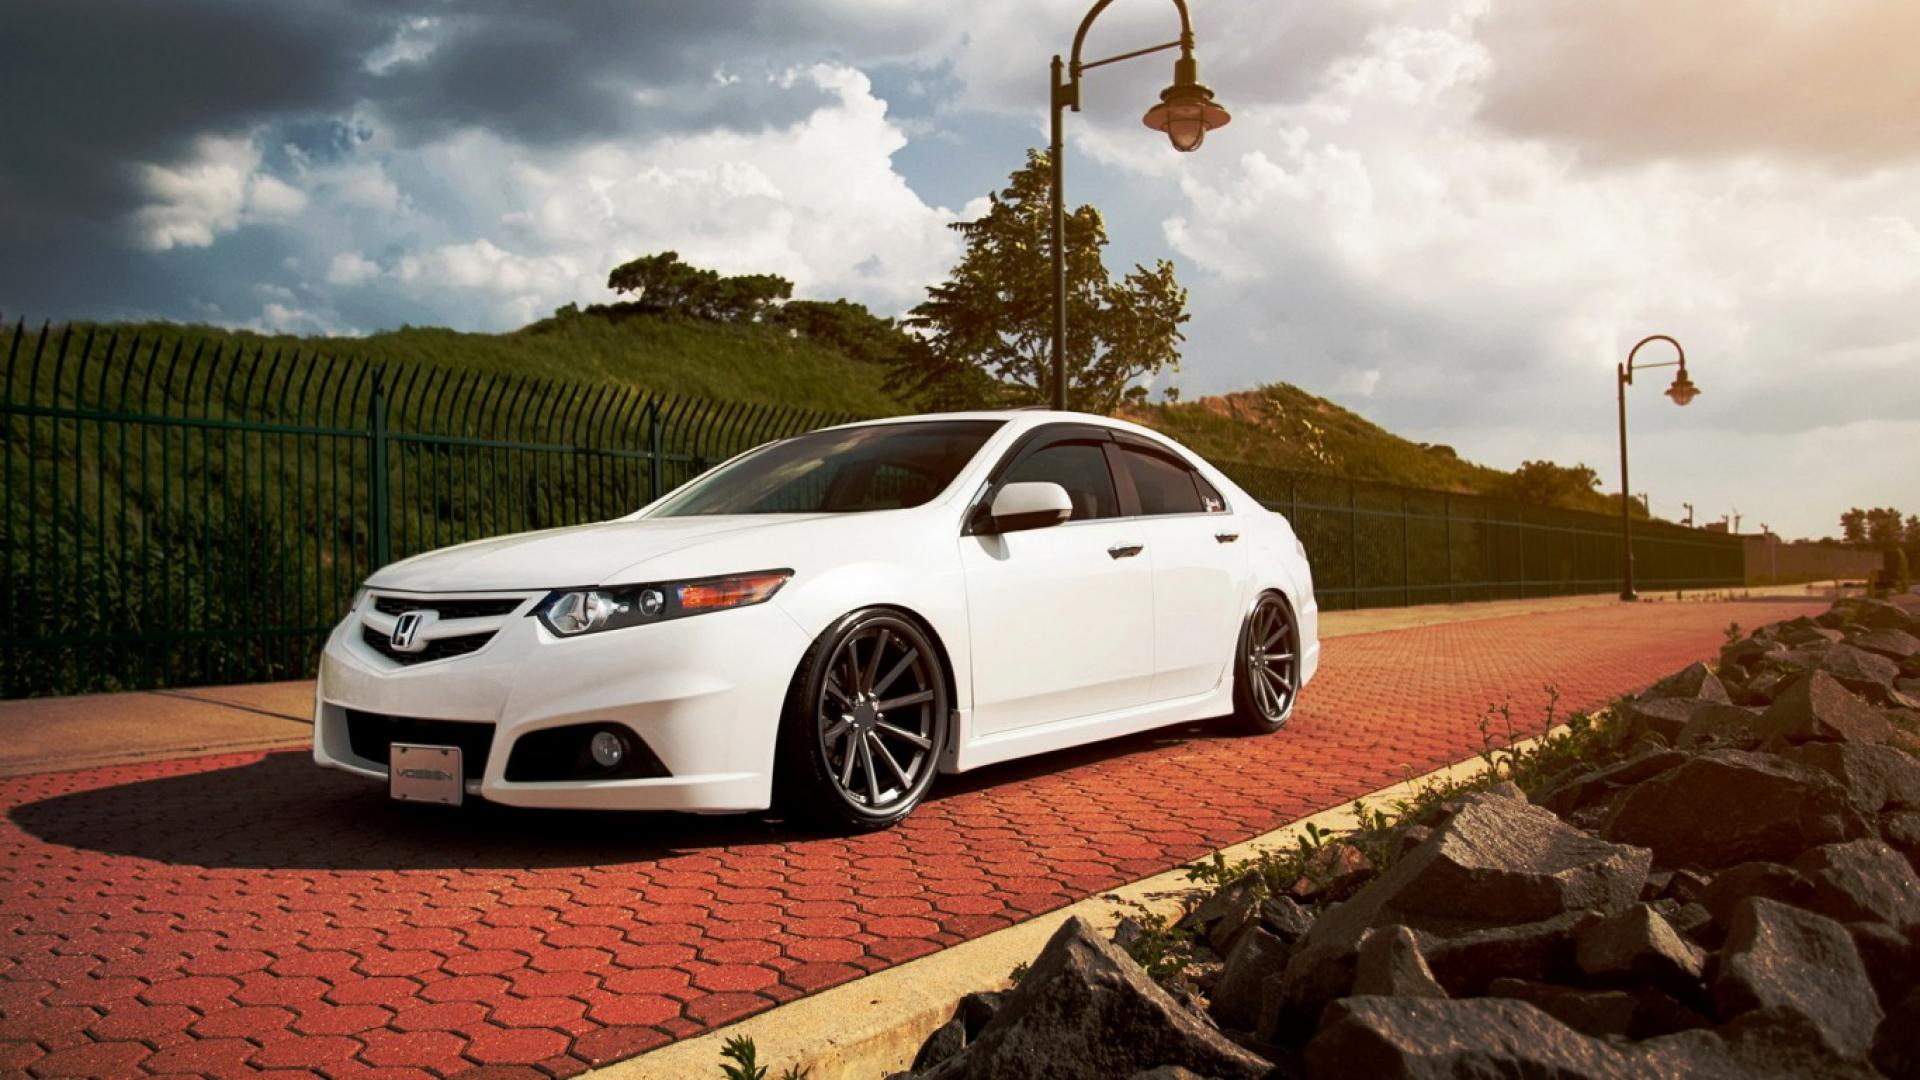 Honda Accord Wallpaper Hd Wallpapersafari